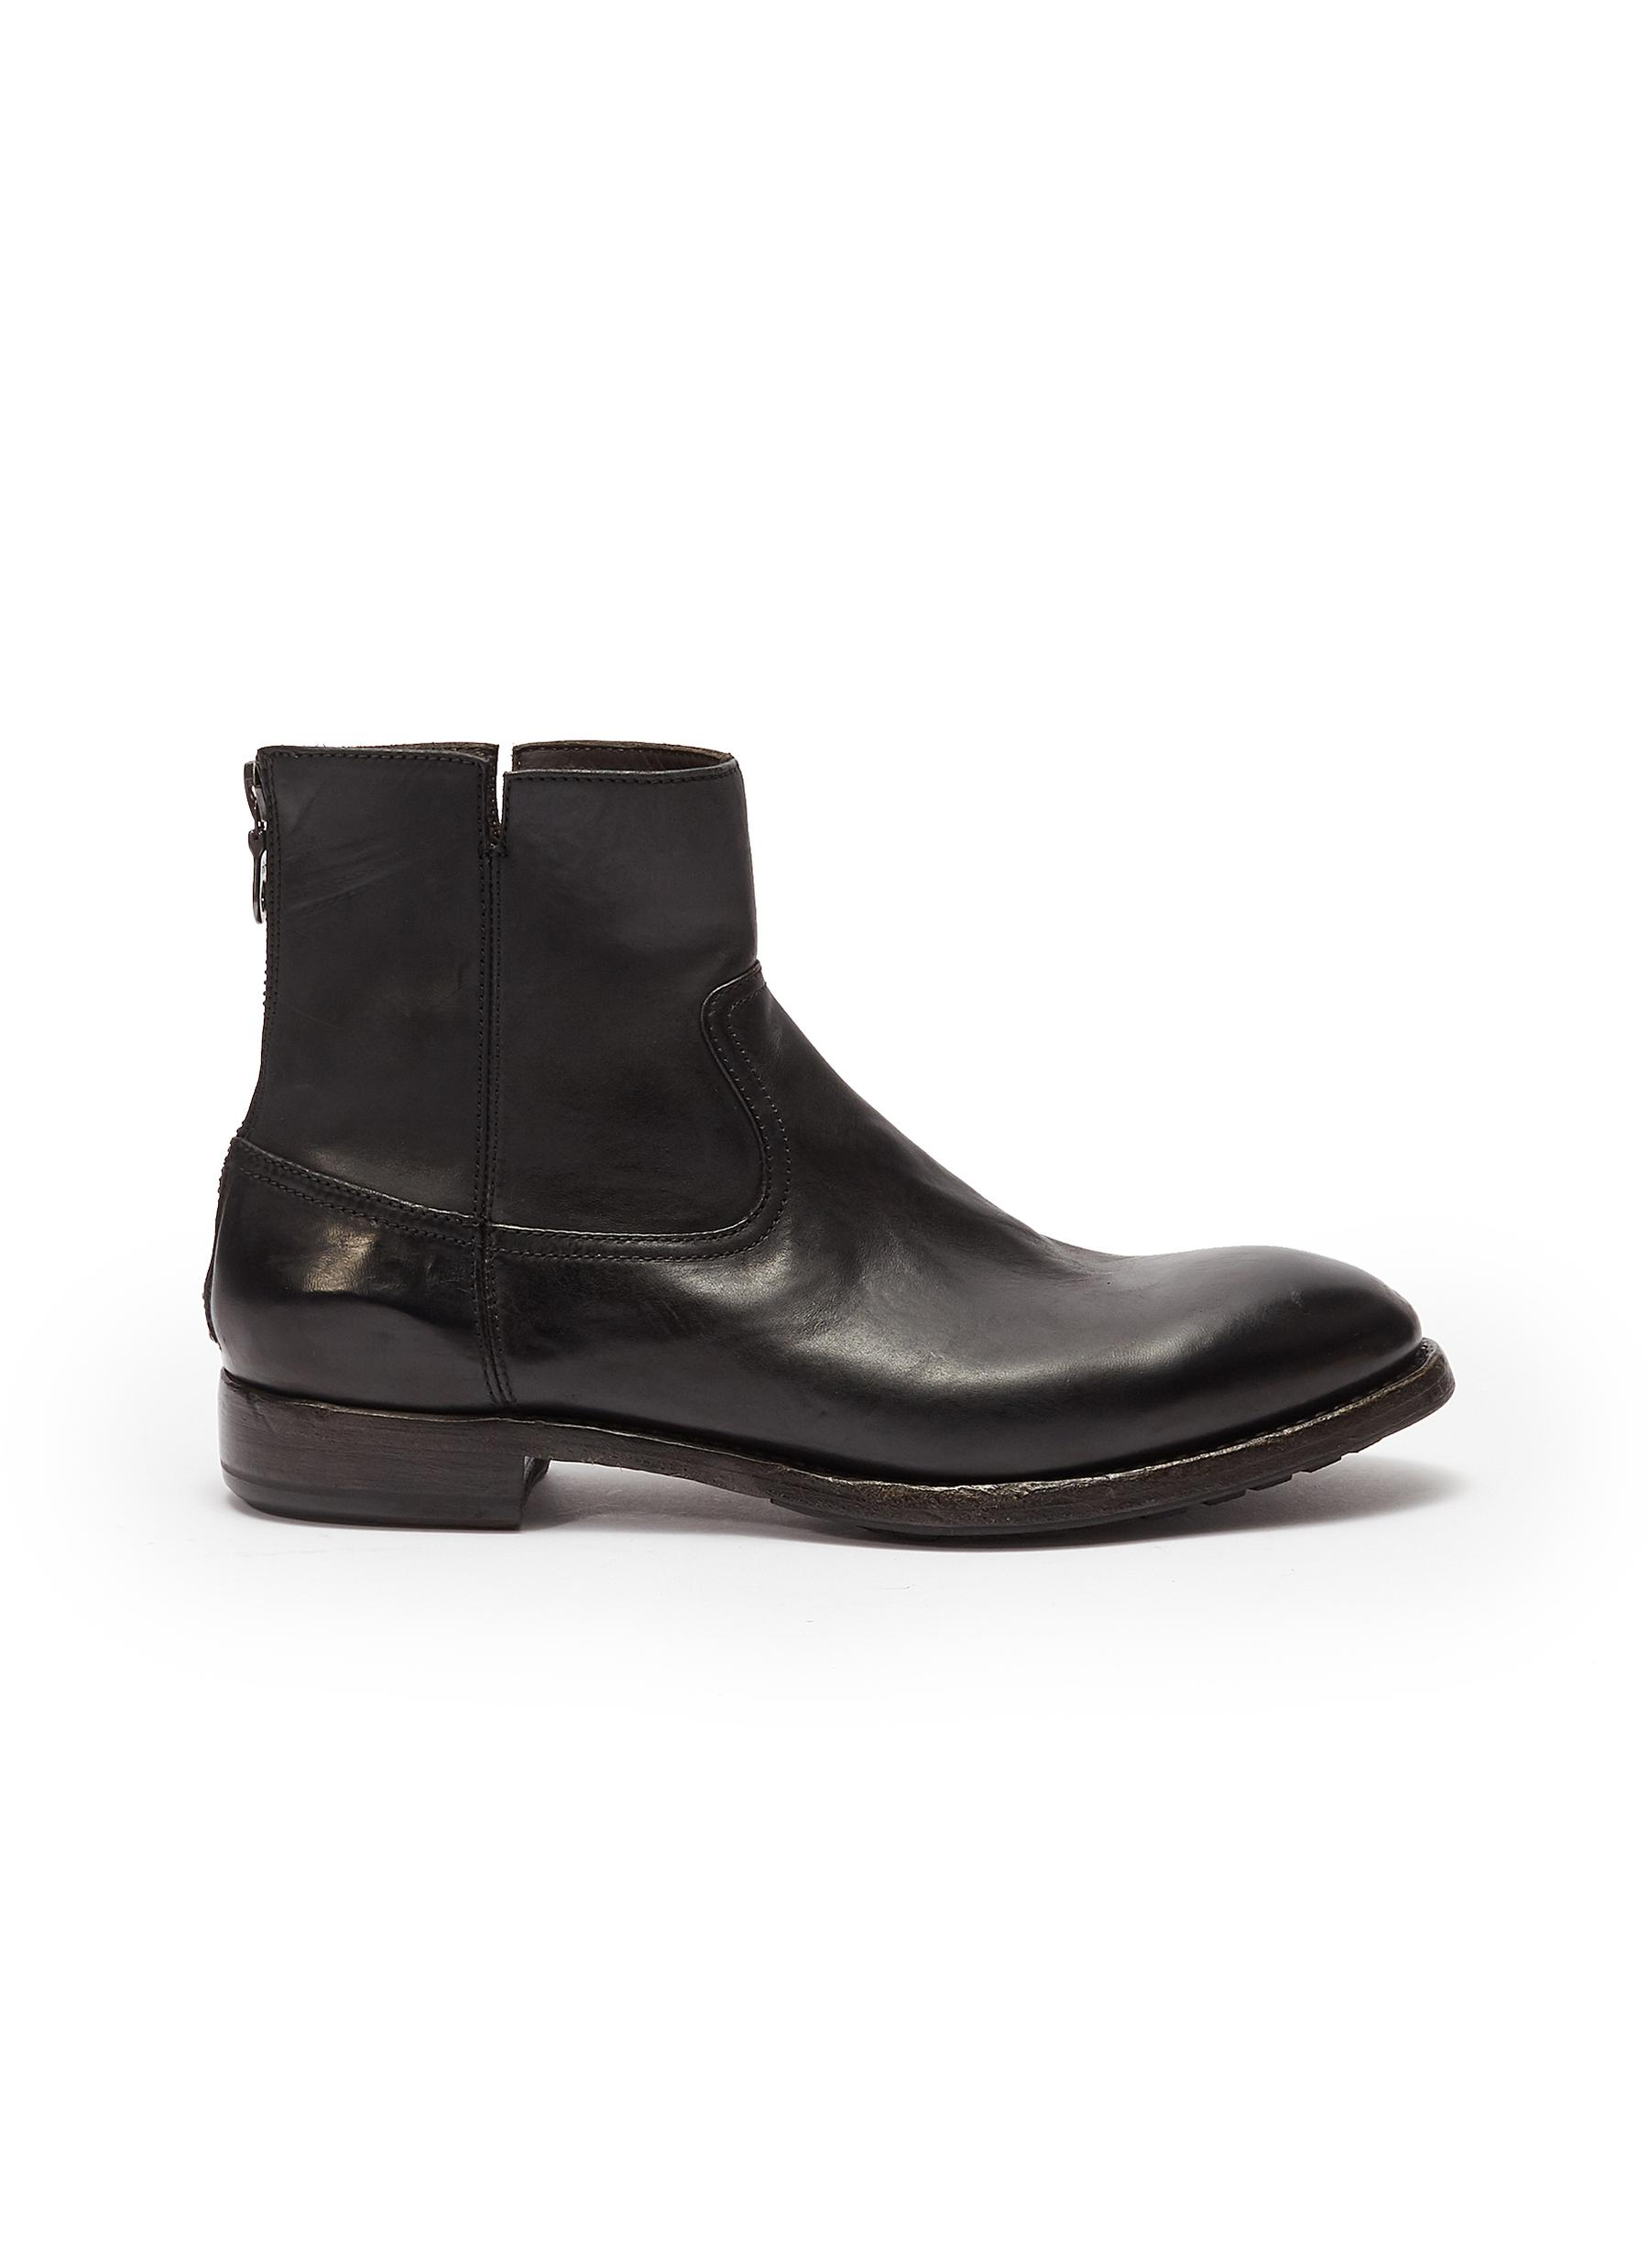 Project Twlv 'Flame' Leather Boots In Black